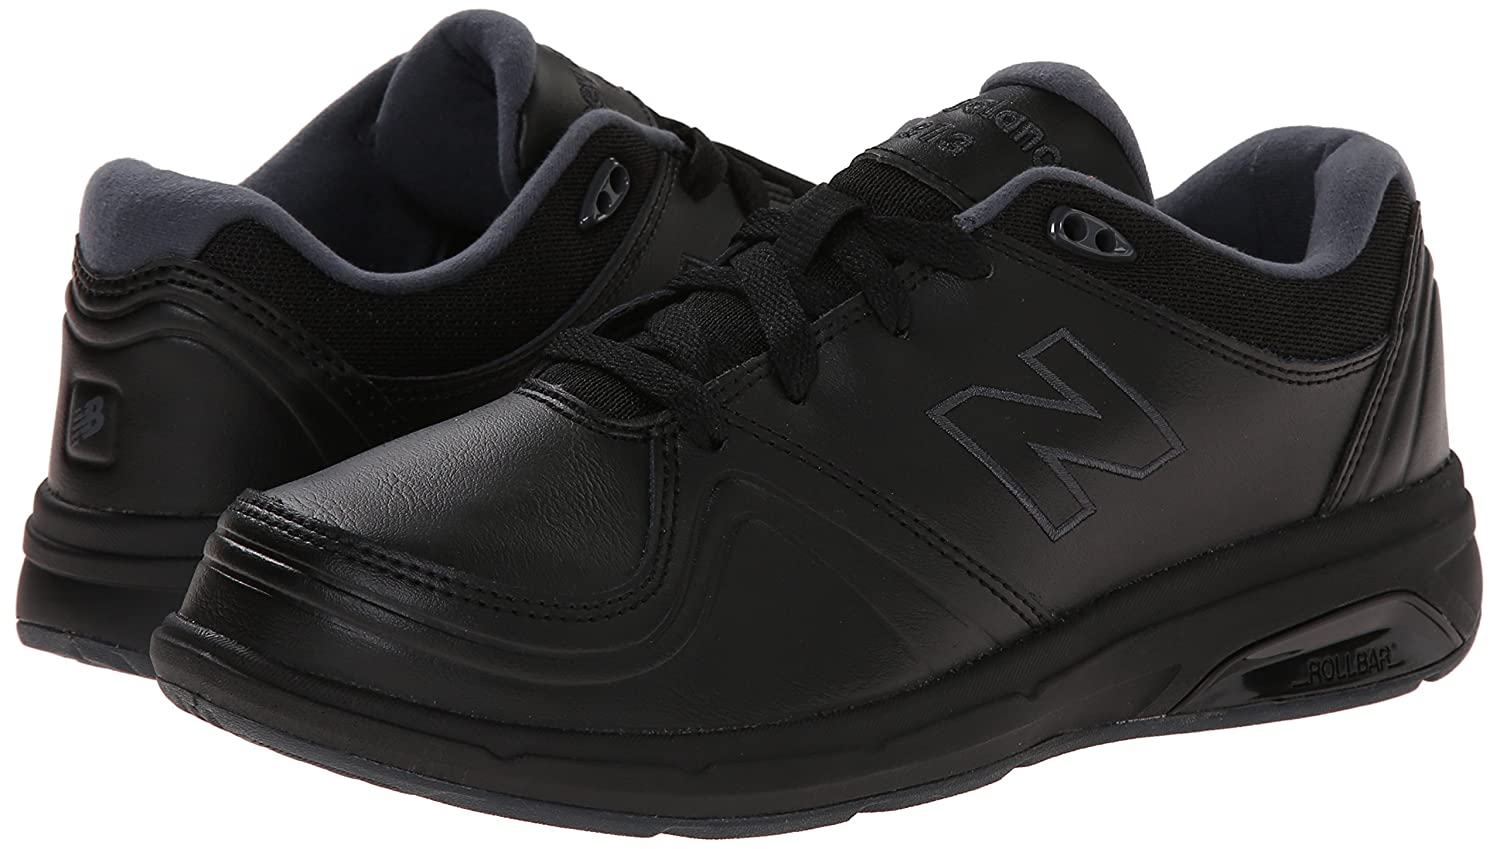 New Balance Women's 7.5 WW813 Walking Shoe B00LNN23IK 7.5 Women's 2E US|Black 10edb0